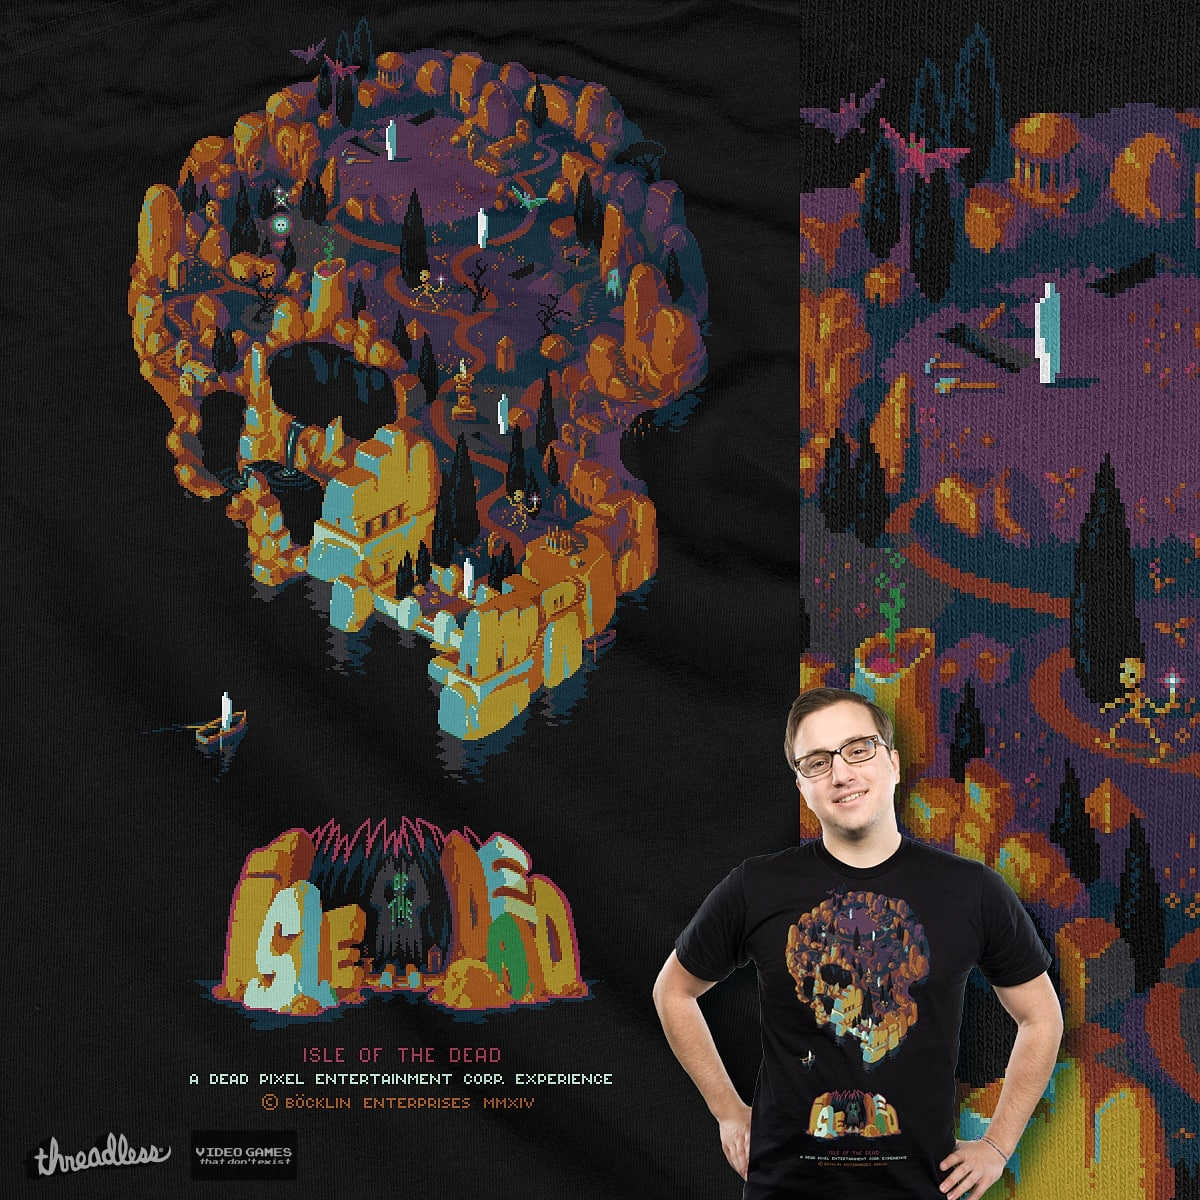 Isle of the Dead / The Game by Manupix on Threadless